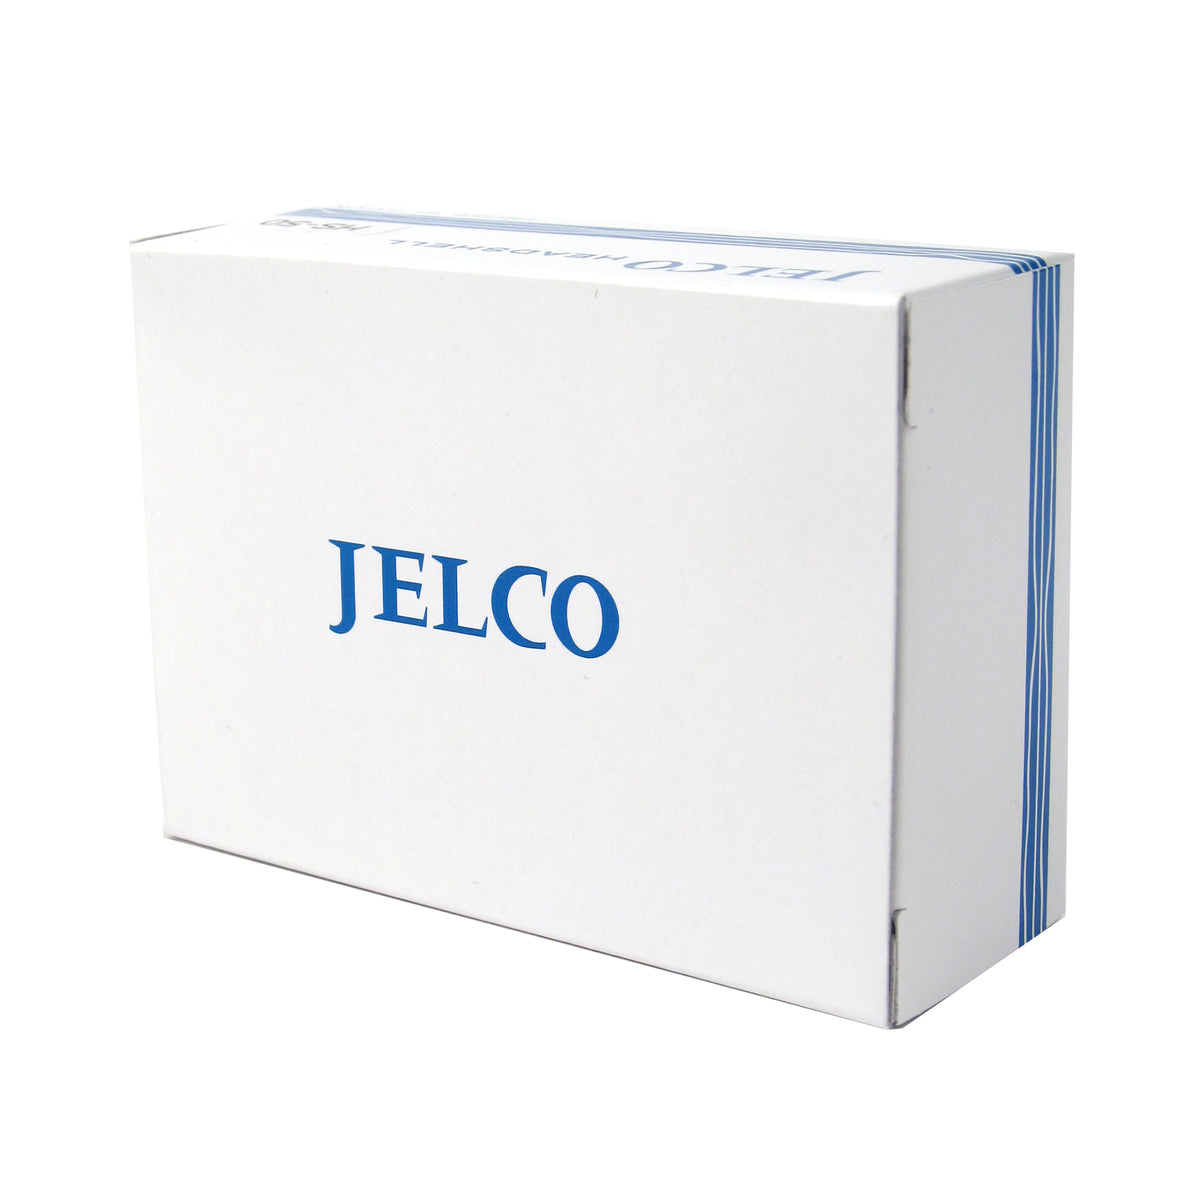 Jelco: HS-25 Magnesium Alloy Turntable Headshell (Made In Japan)